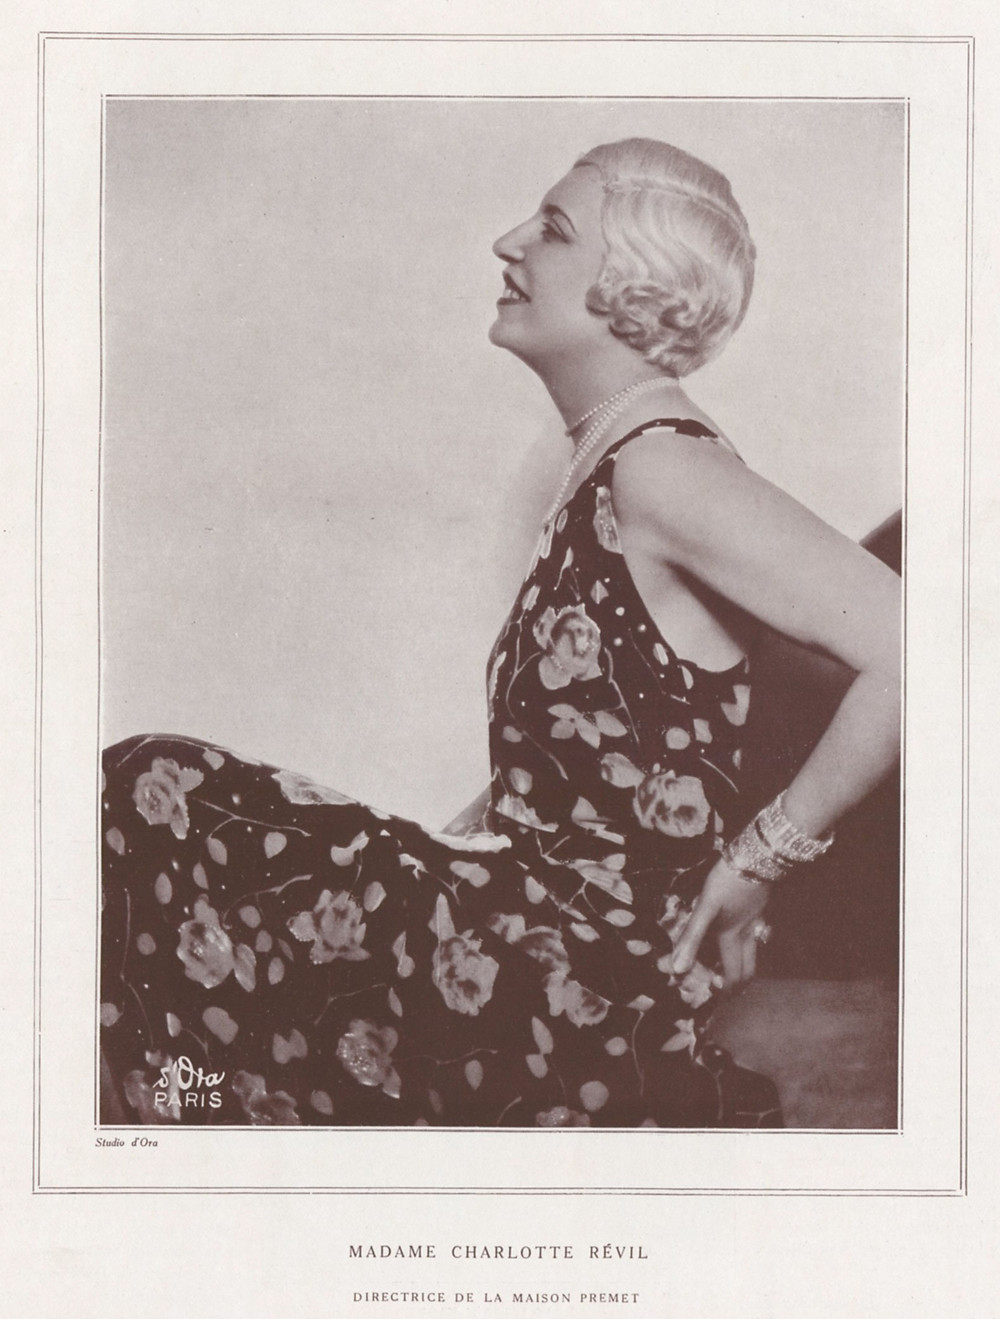 Charlotte took over from Renee in 1918 as designer for Premet and stayed on until 1930. From Les Modes, 1929.